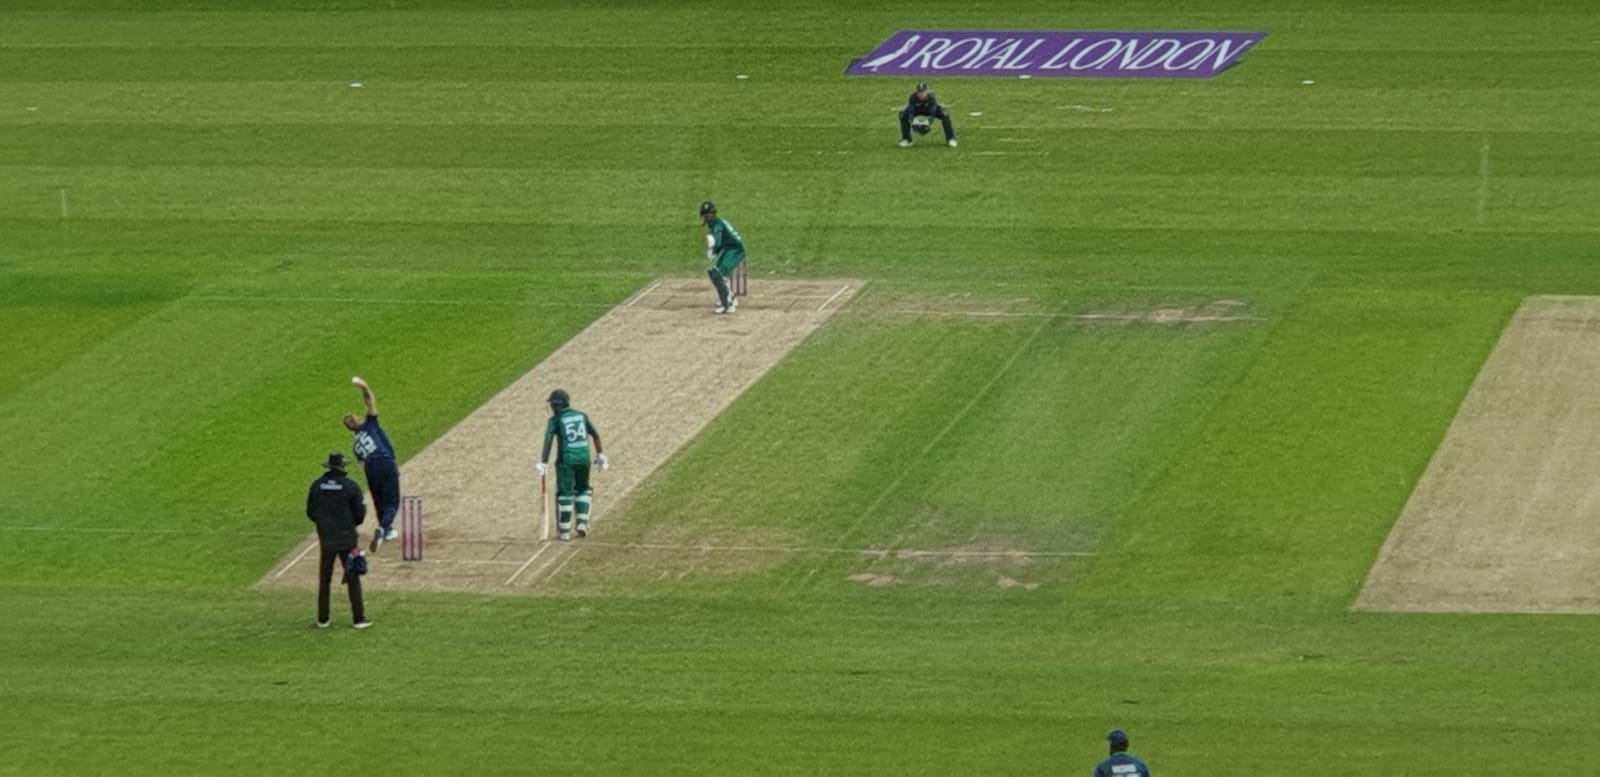 Pictures from the 5th ODI between England and Pakistan